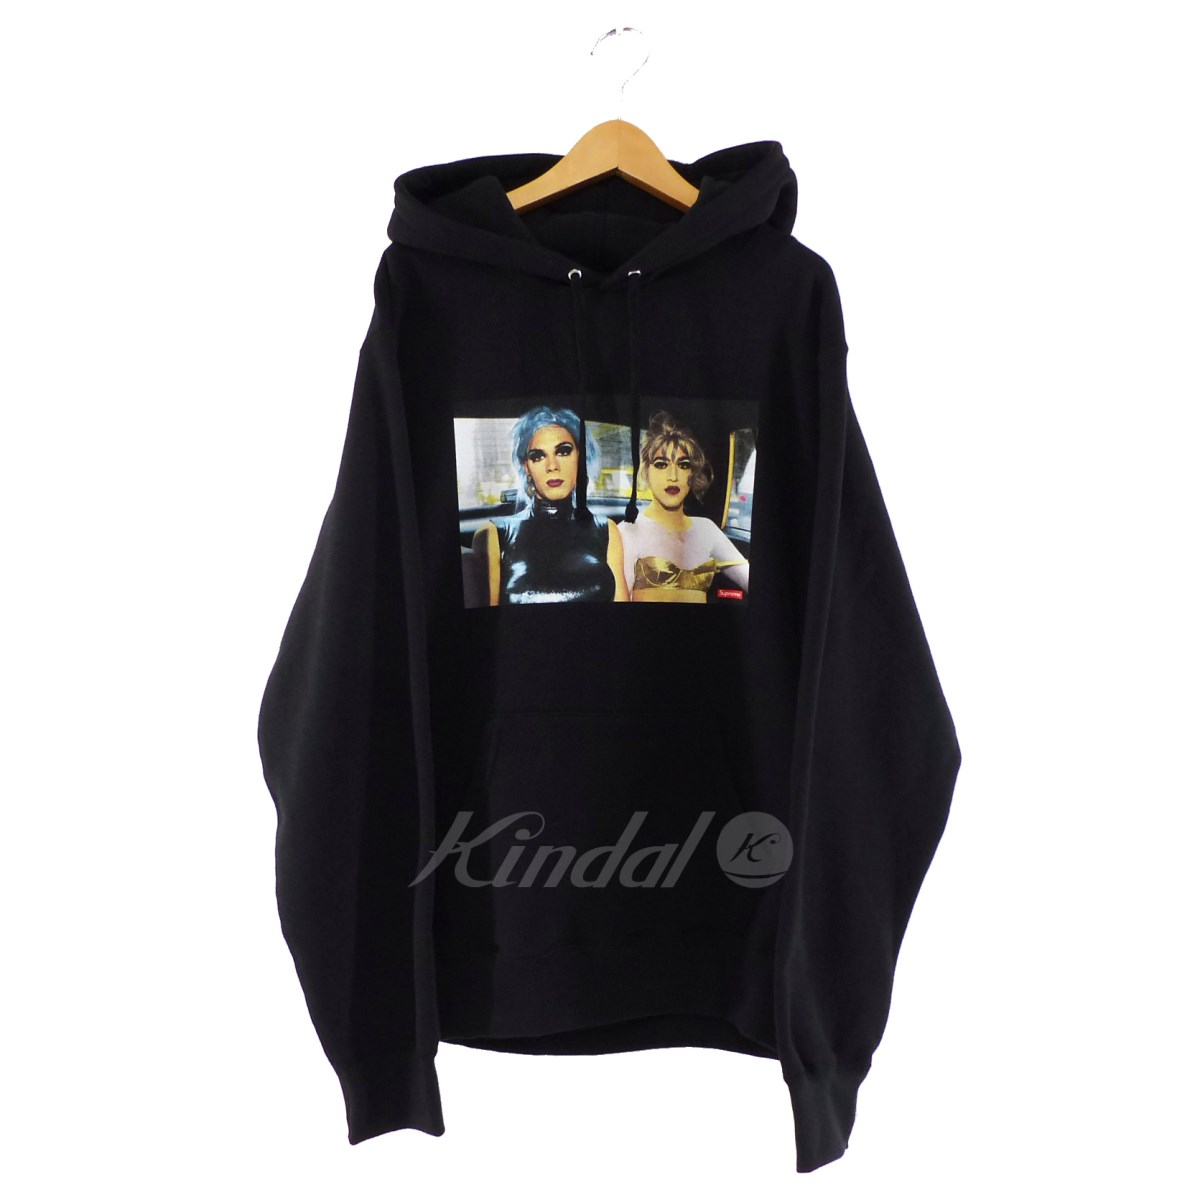 【中古】SUPREME 2018SS Misty and Jimmy Paulette Hooded Sweatshirt 【送料無料】 【102196】 【KIND1550】